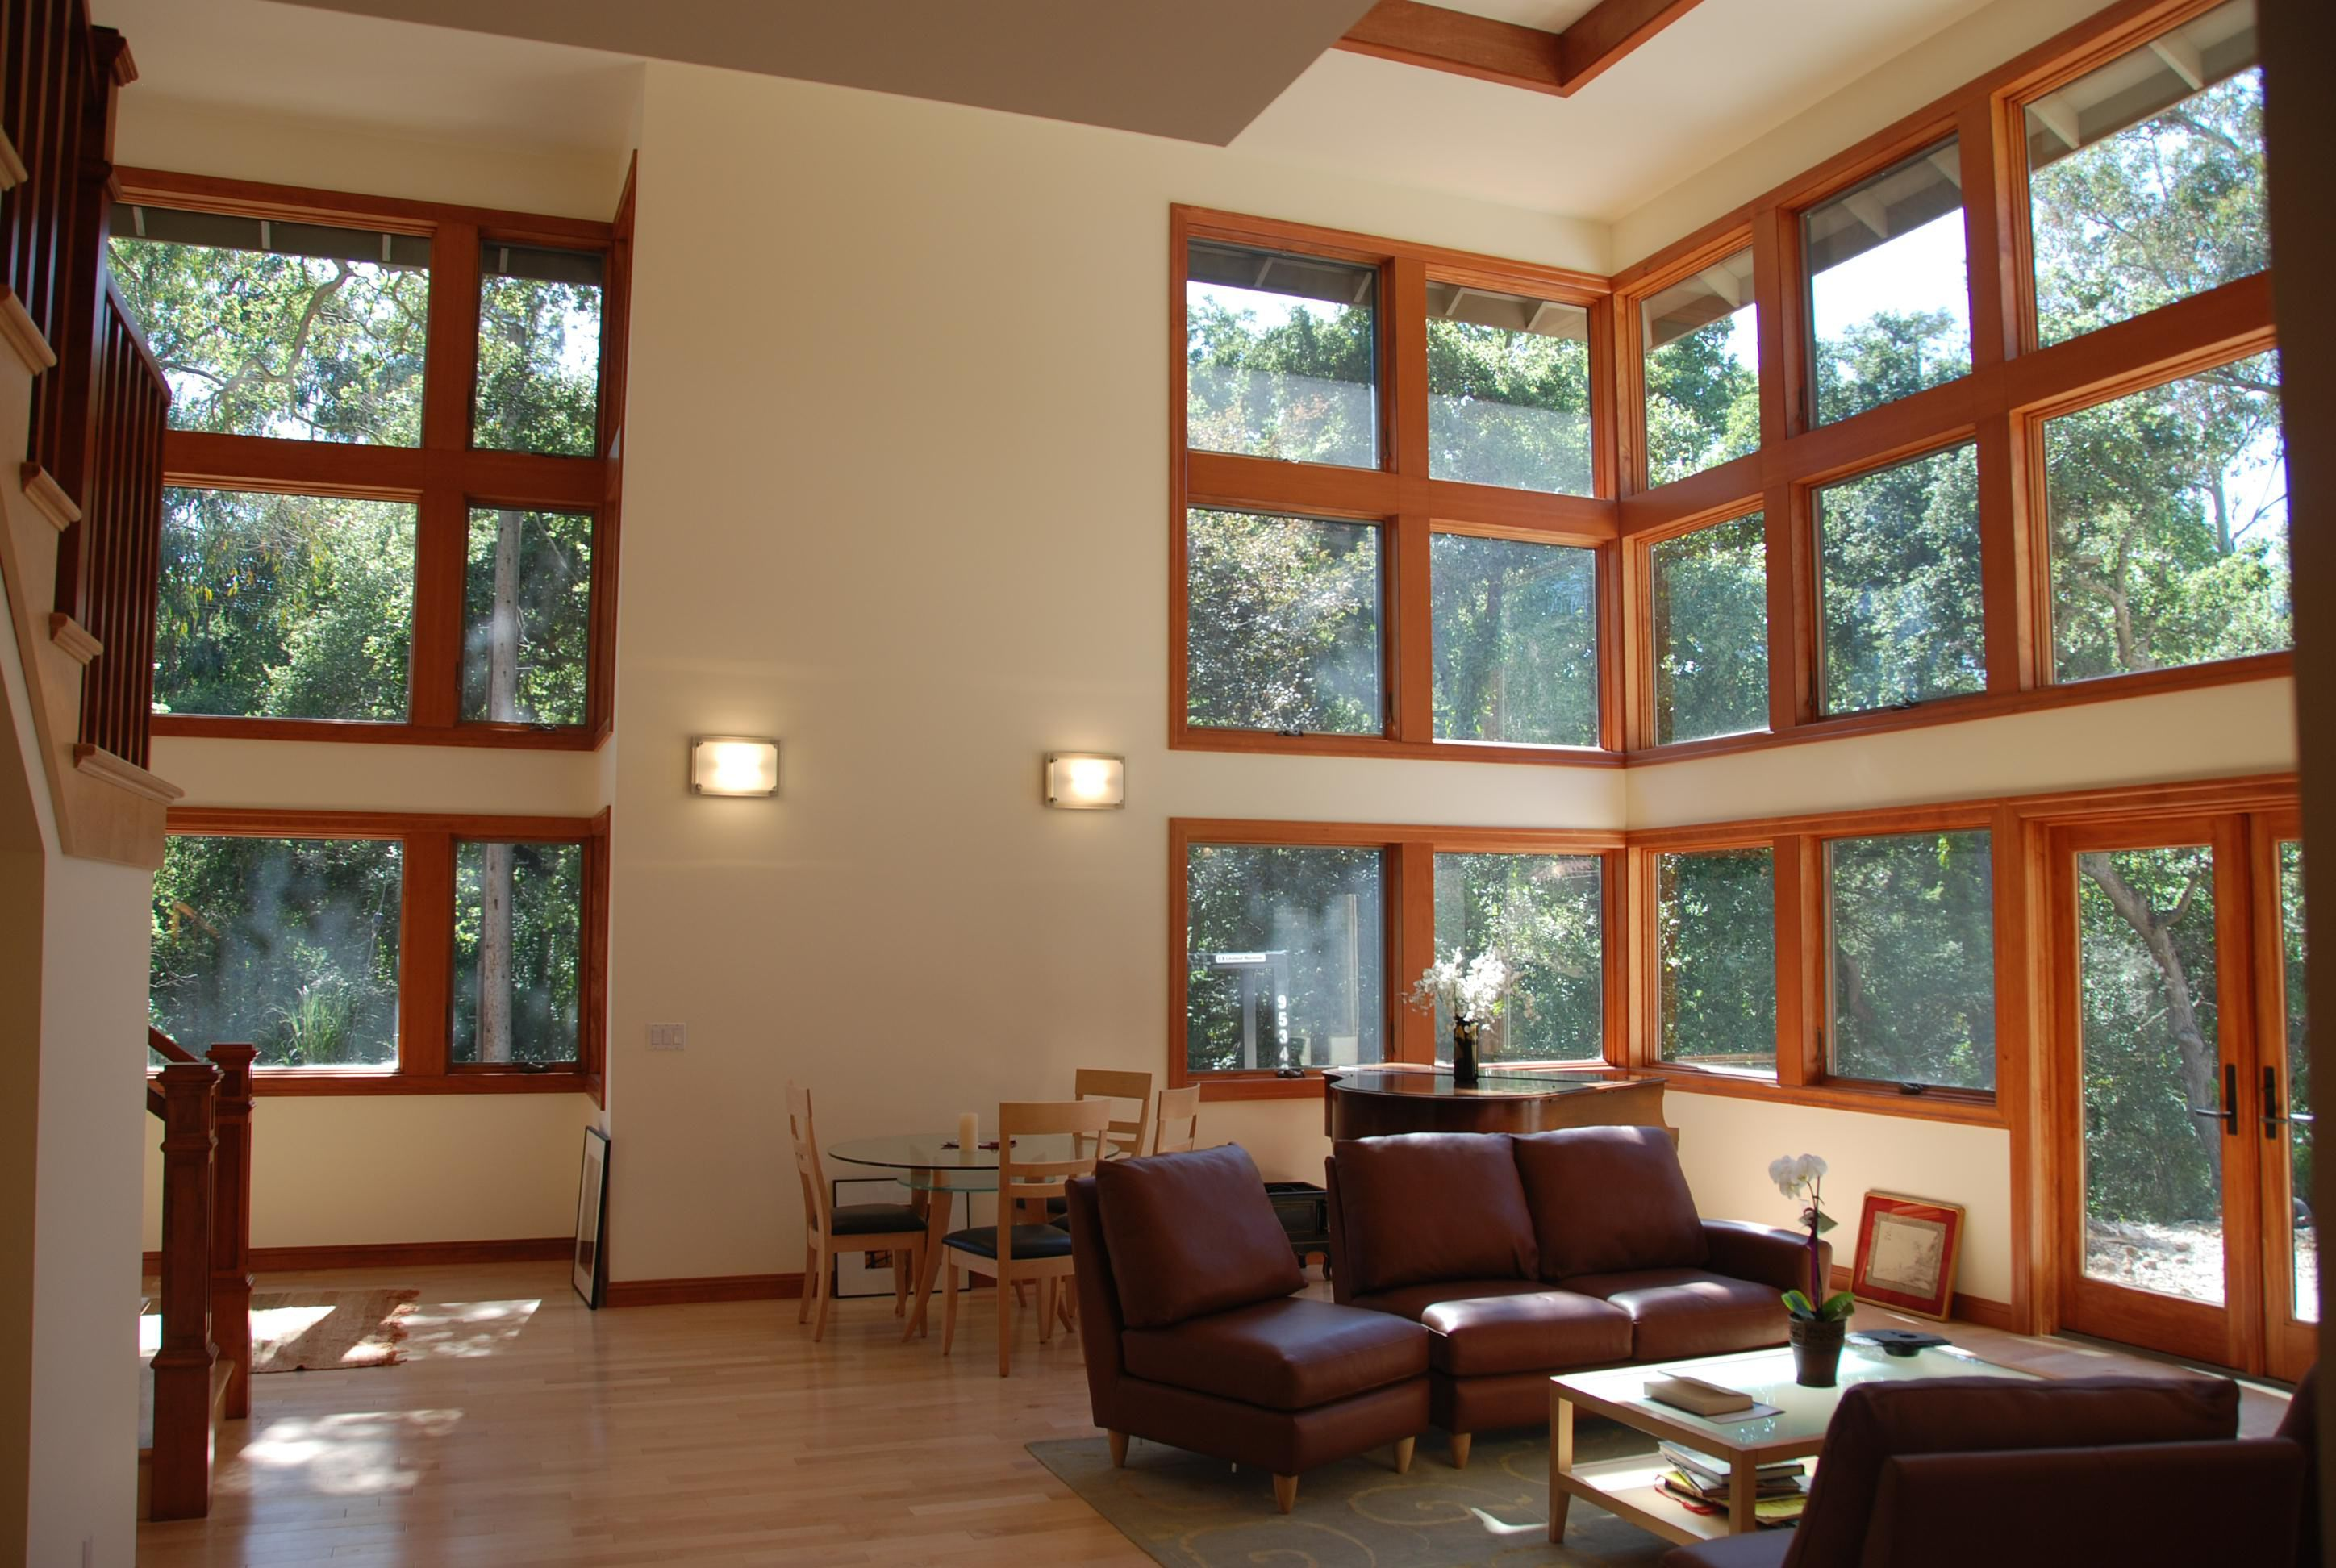 Living room with large windows with view, arctitect design work, Menlo Park